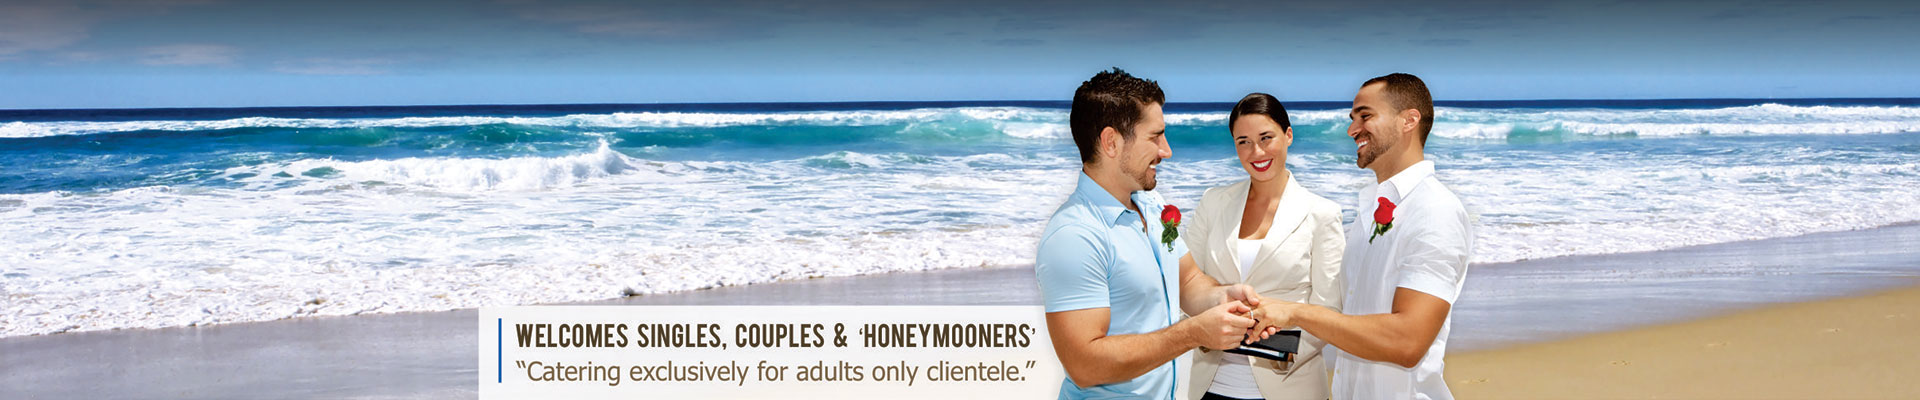 Welcomes singles, couples and 'honeymooners'